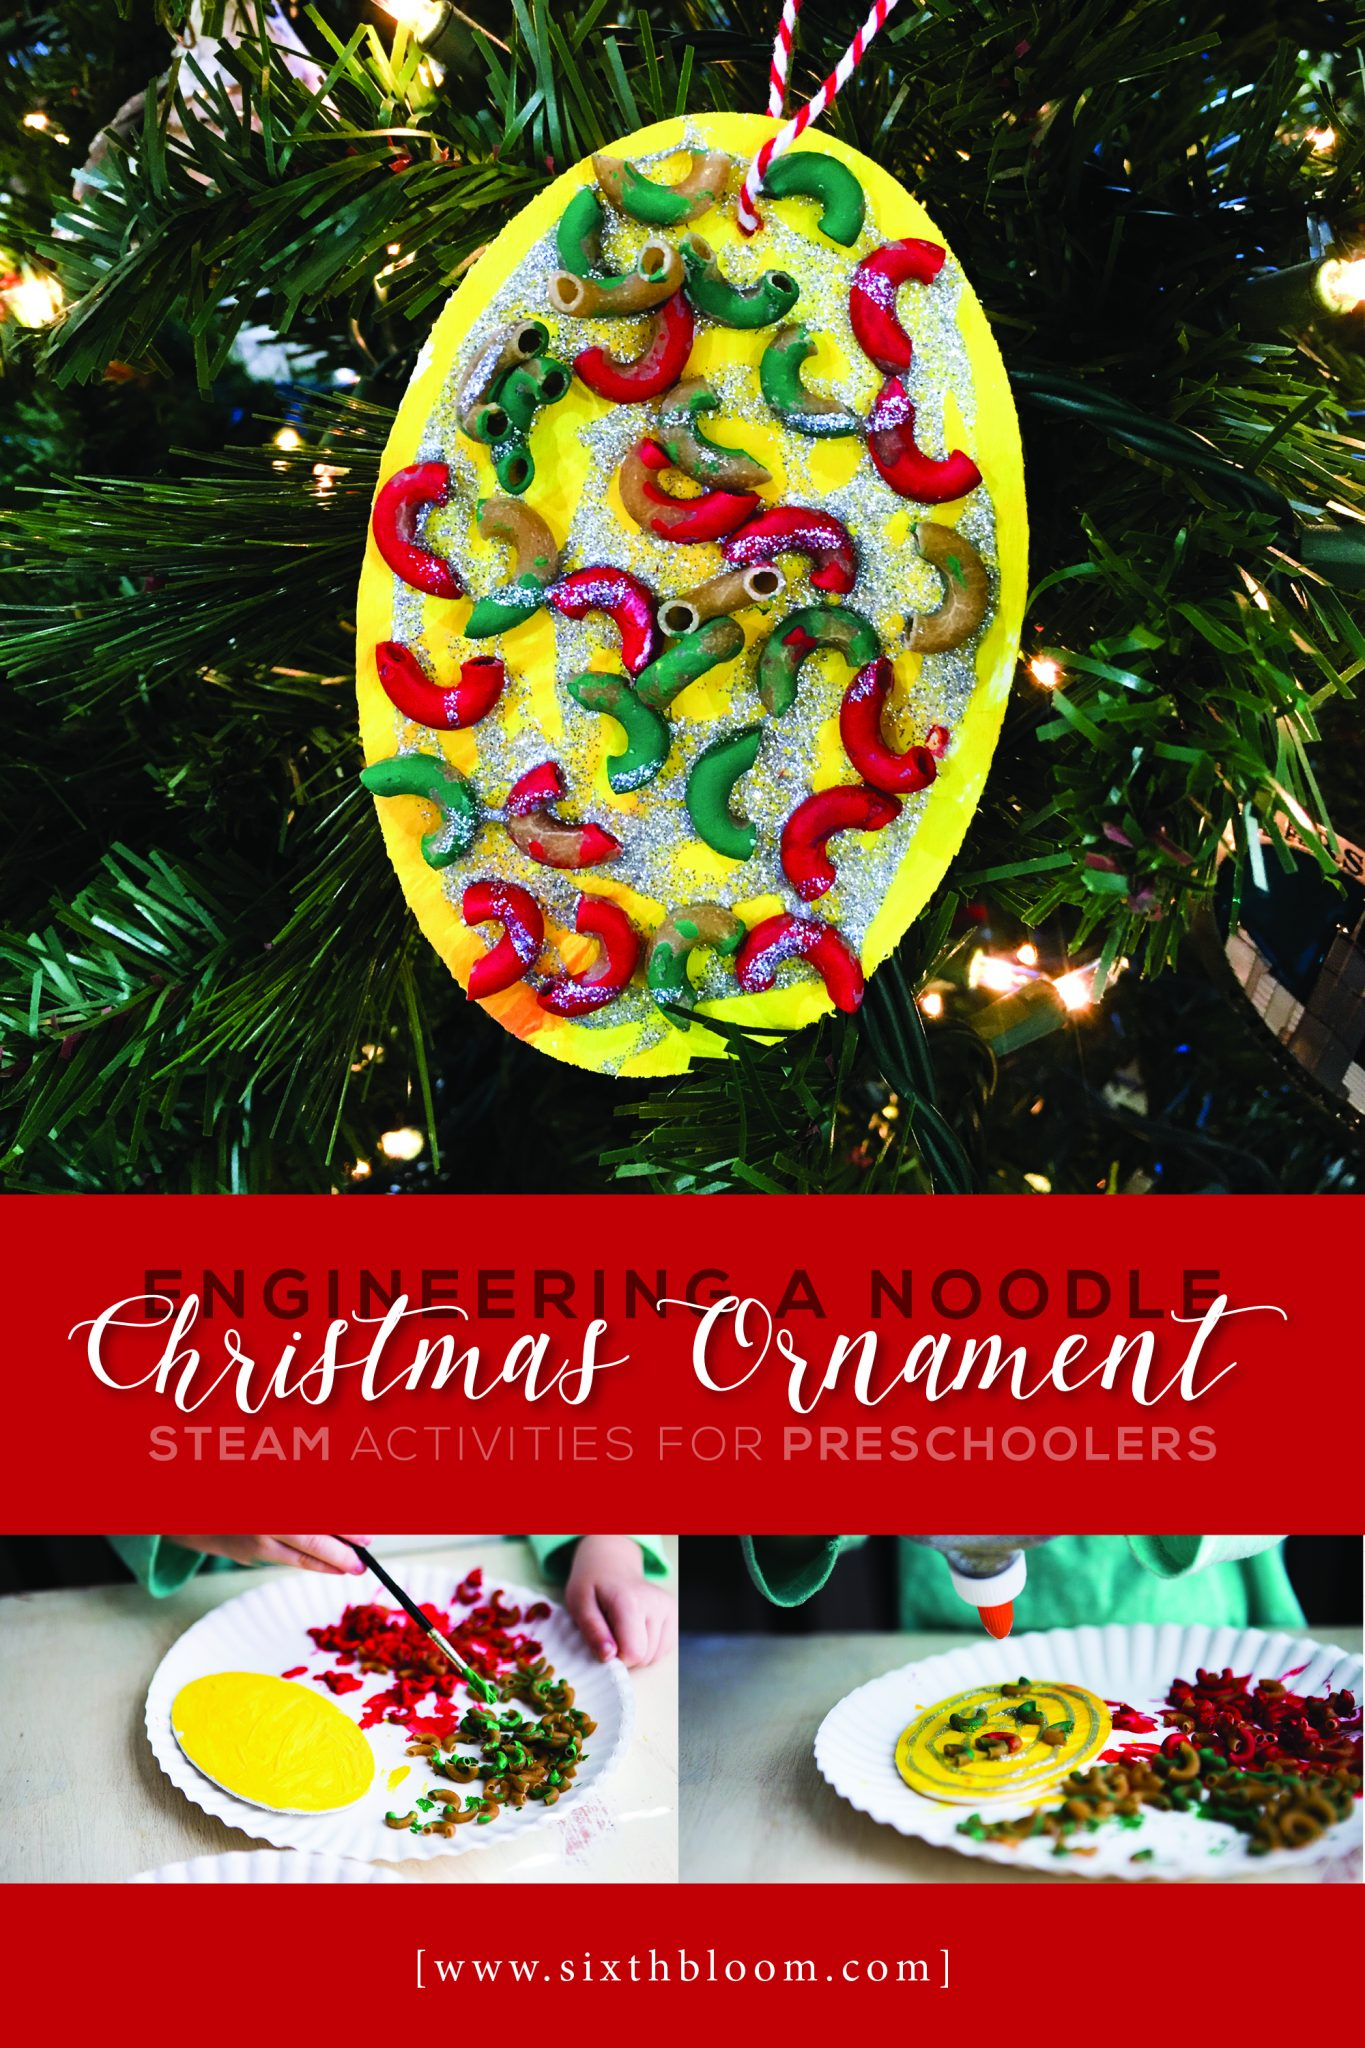 Engineering a Noodle Christmas Ornament